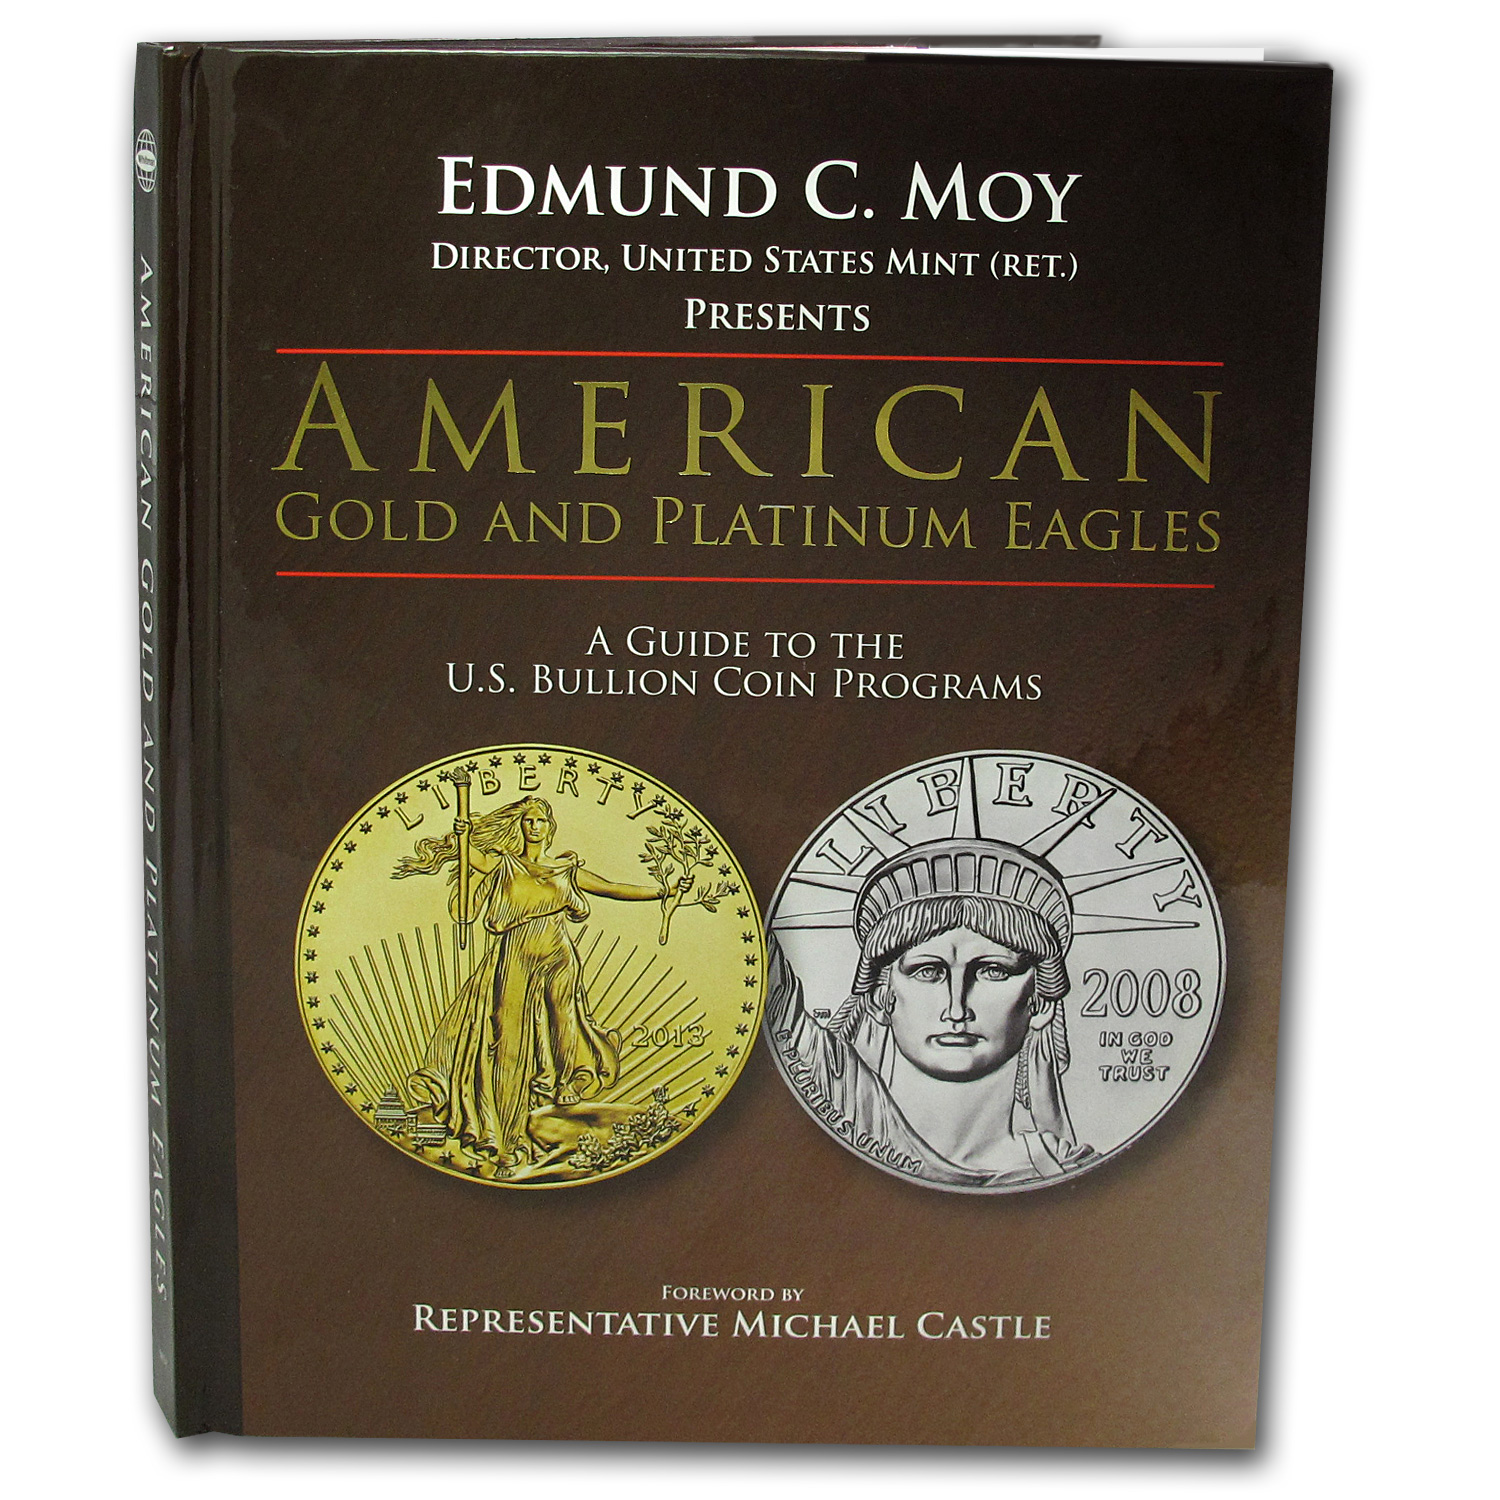 1997-2008 1/2 oz Platinum Eagle Complete 12 Coin Collection